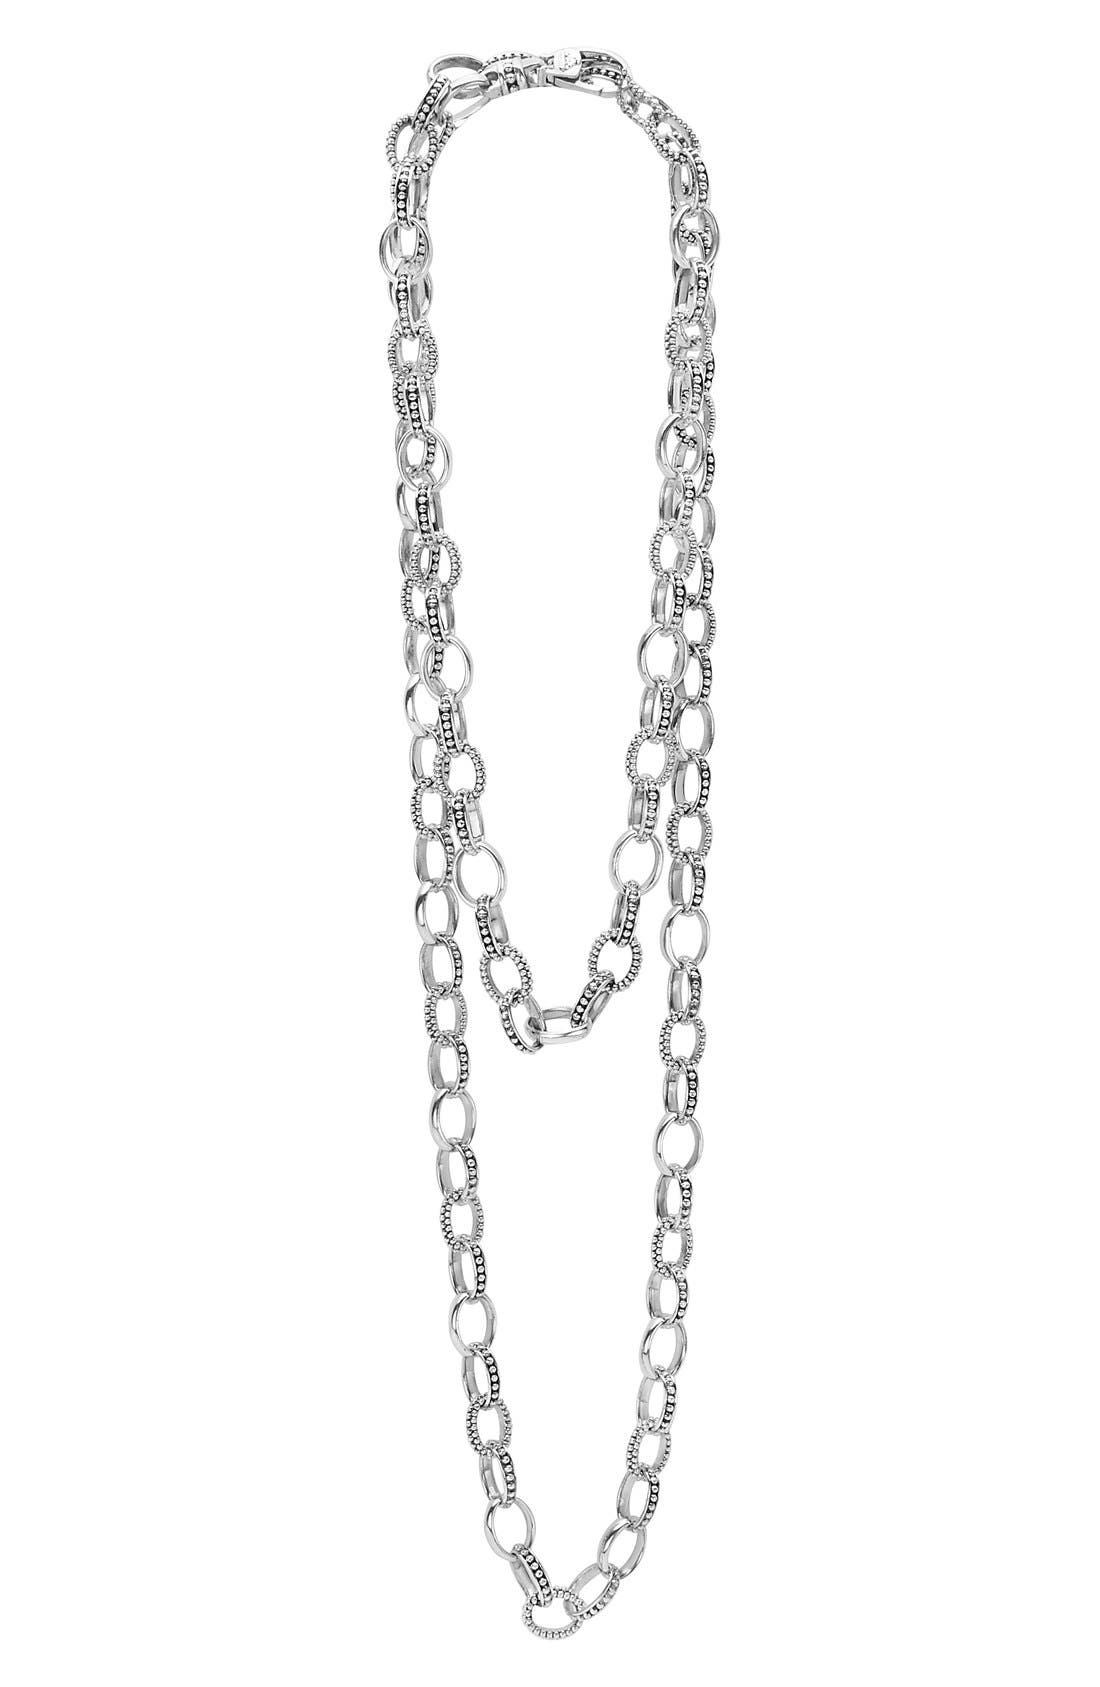 LAGOS 'Link' Caviar Chain Necklace